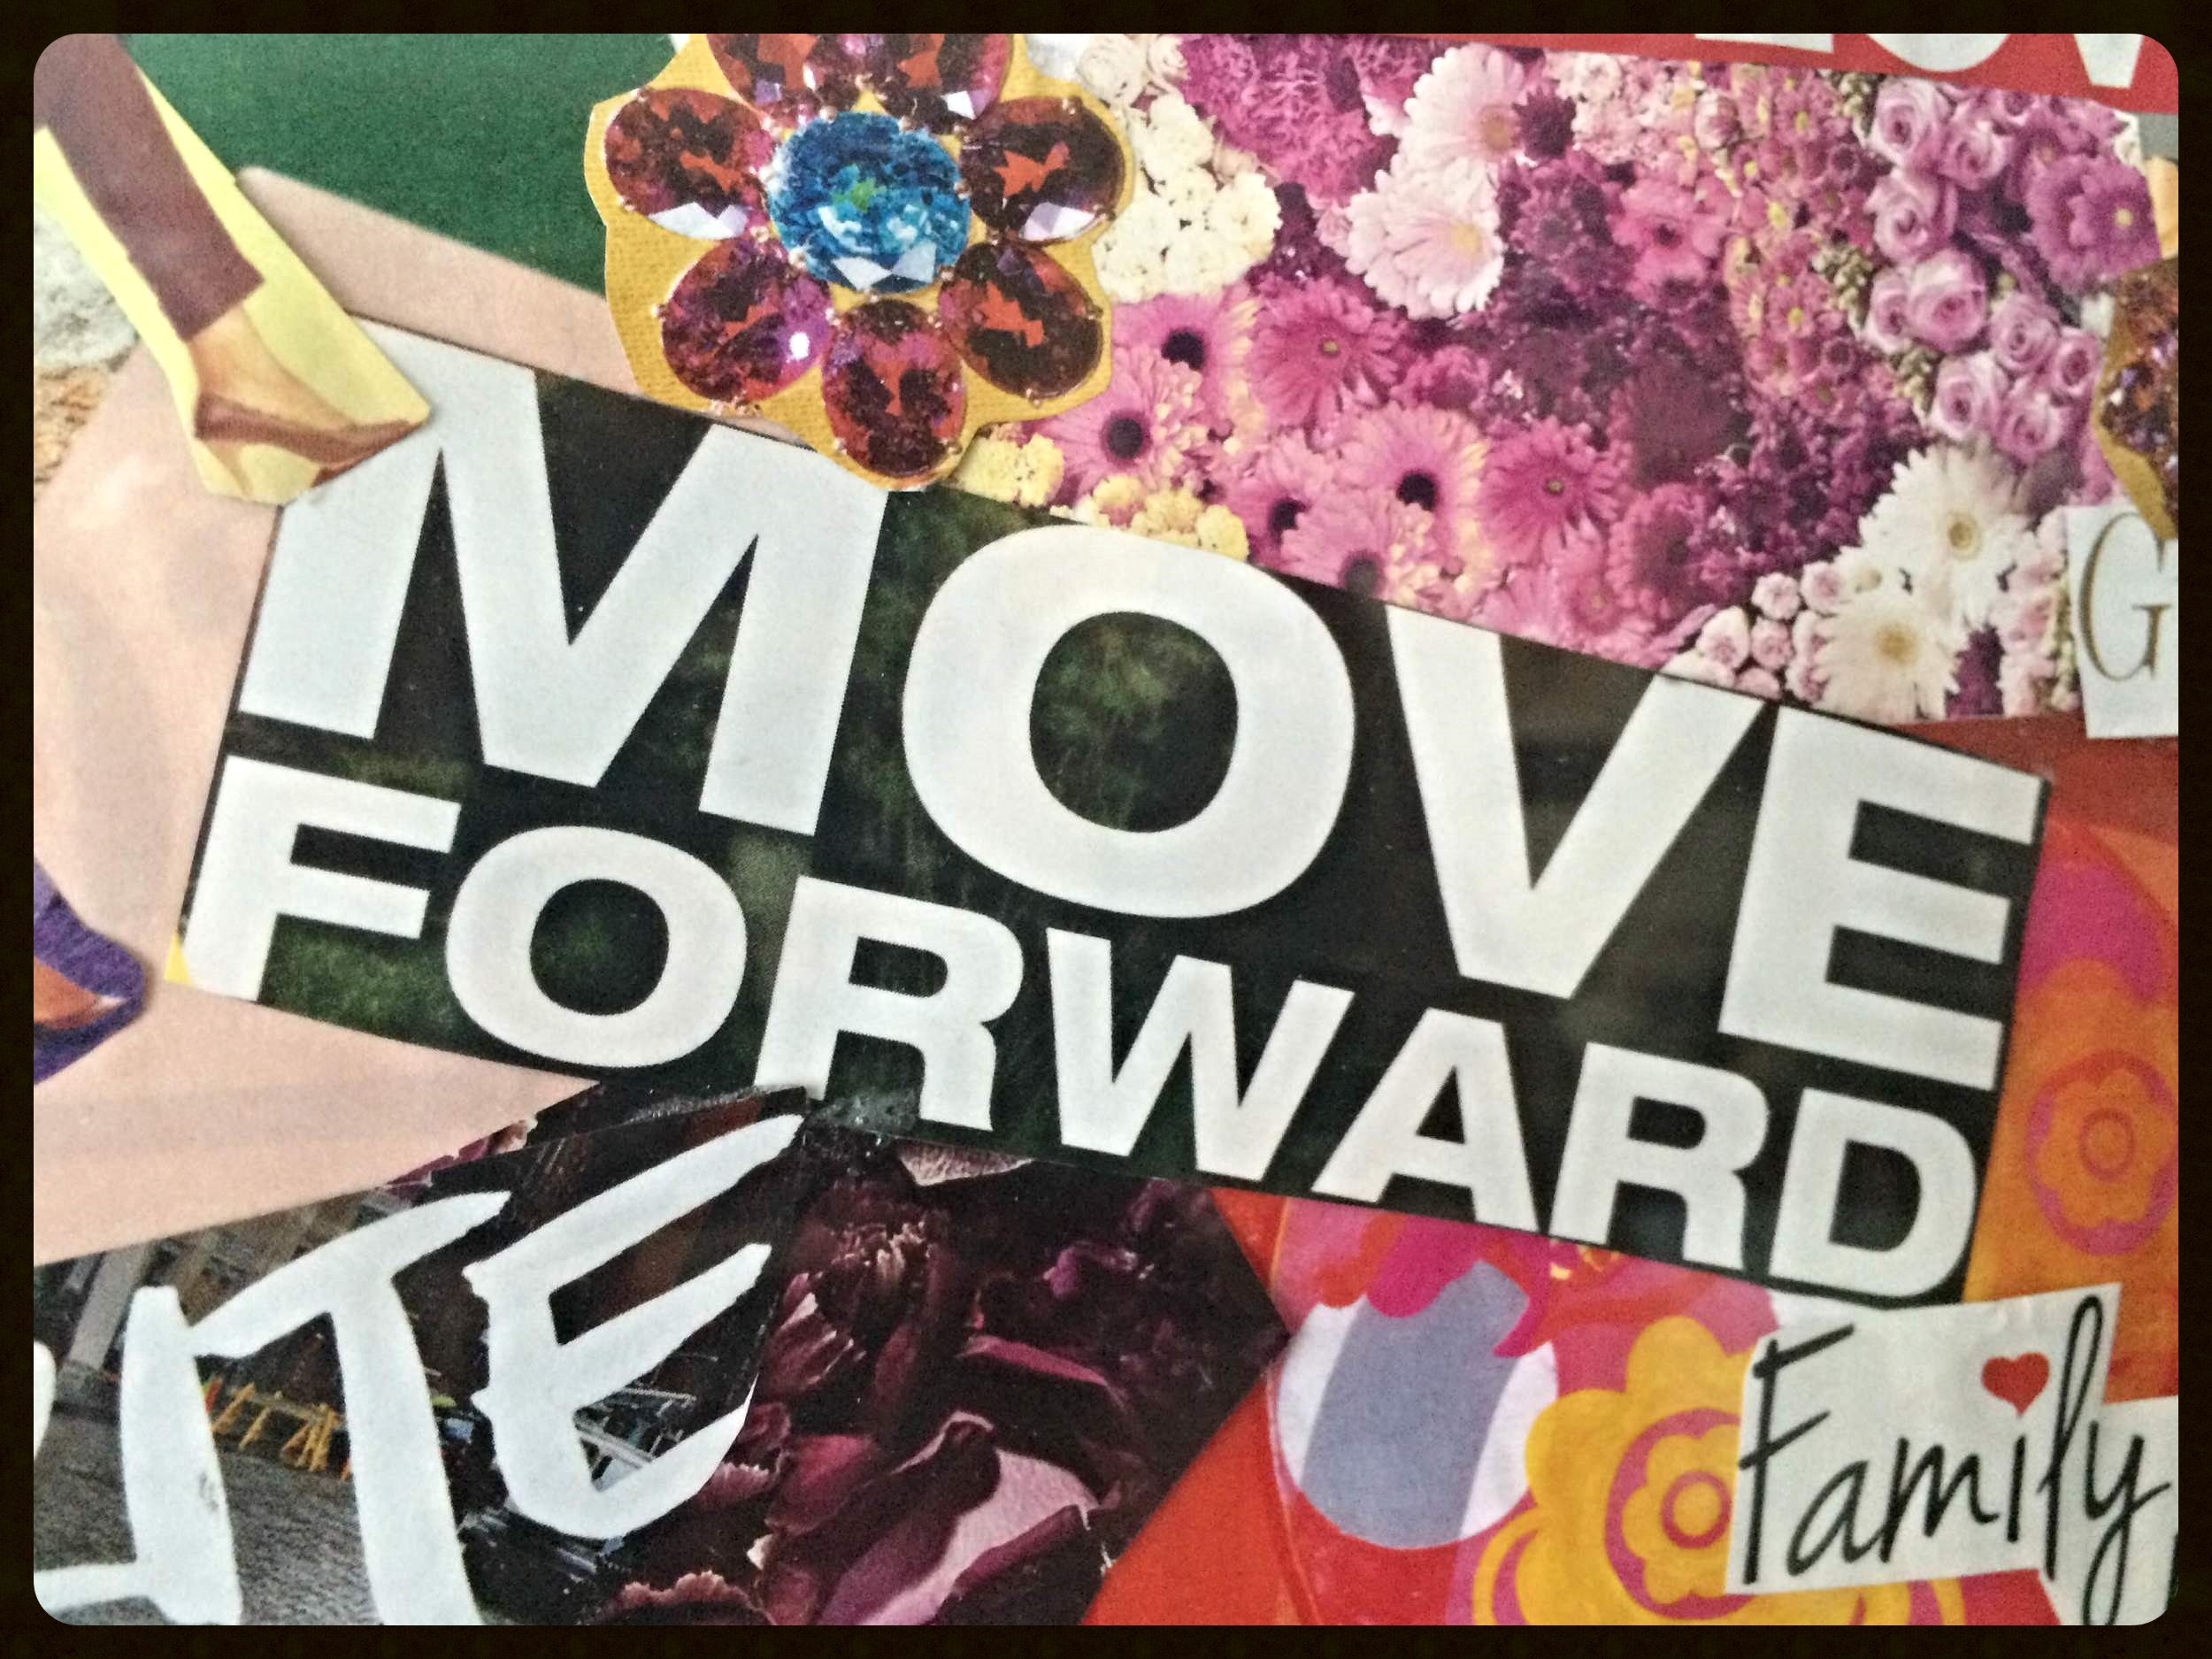 From my 2015 vision board - www.justtev.com